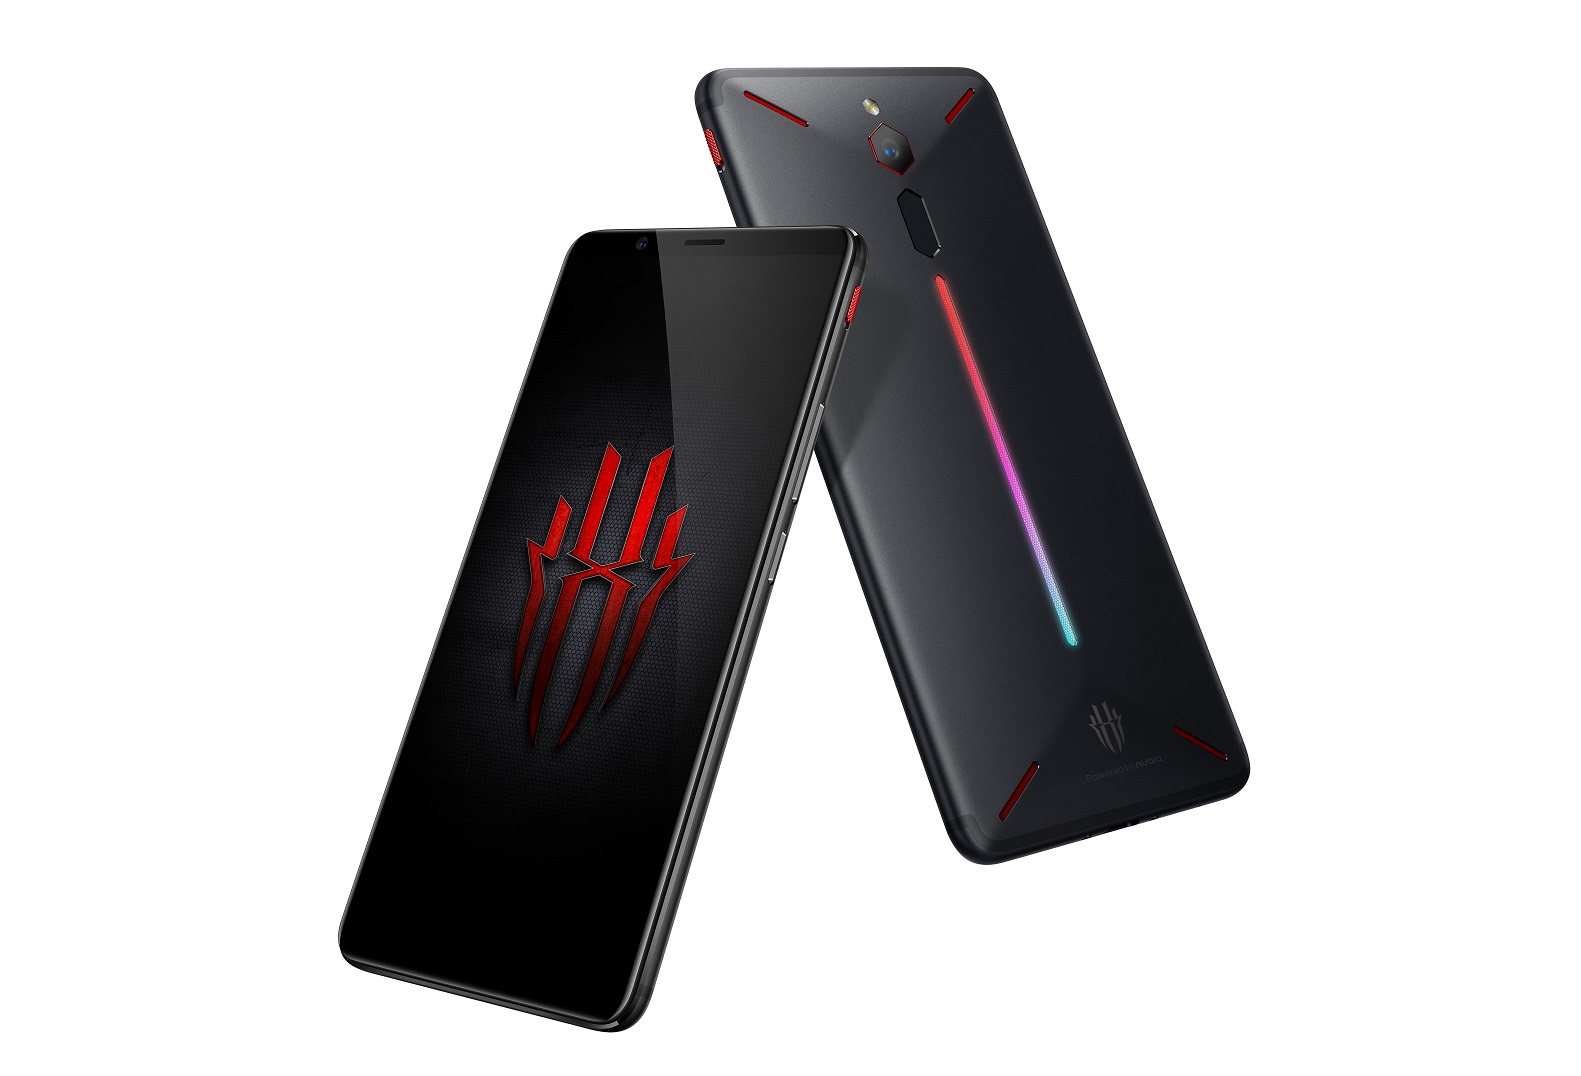 Nubia Red Magic Gaming smartphone launched with Snapdragon 835